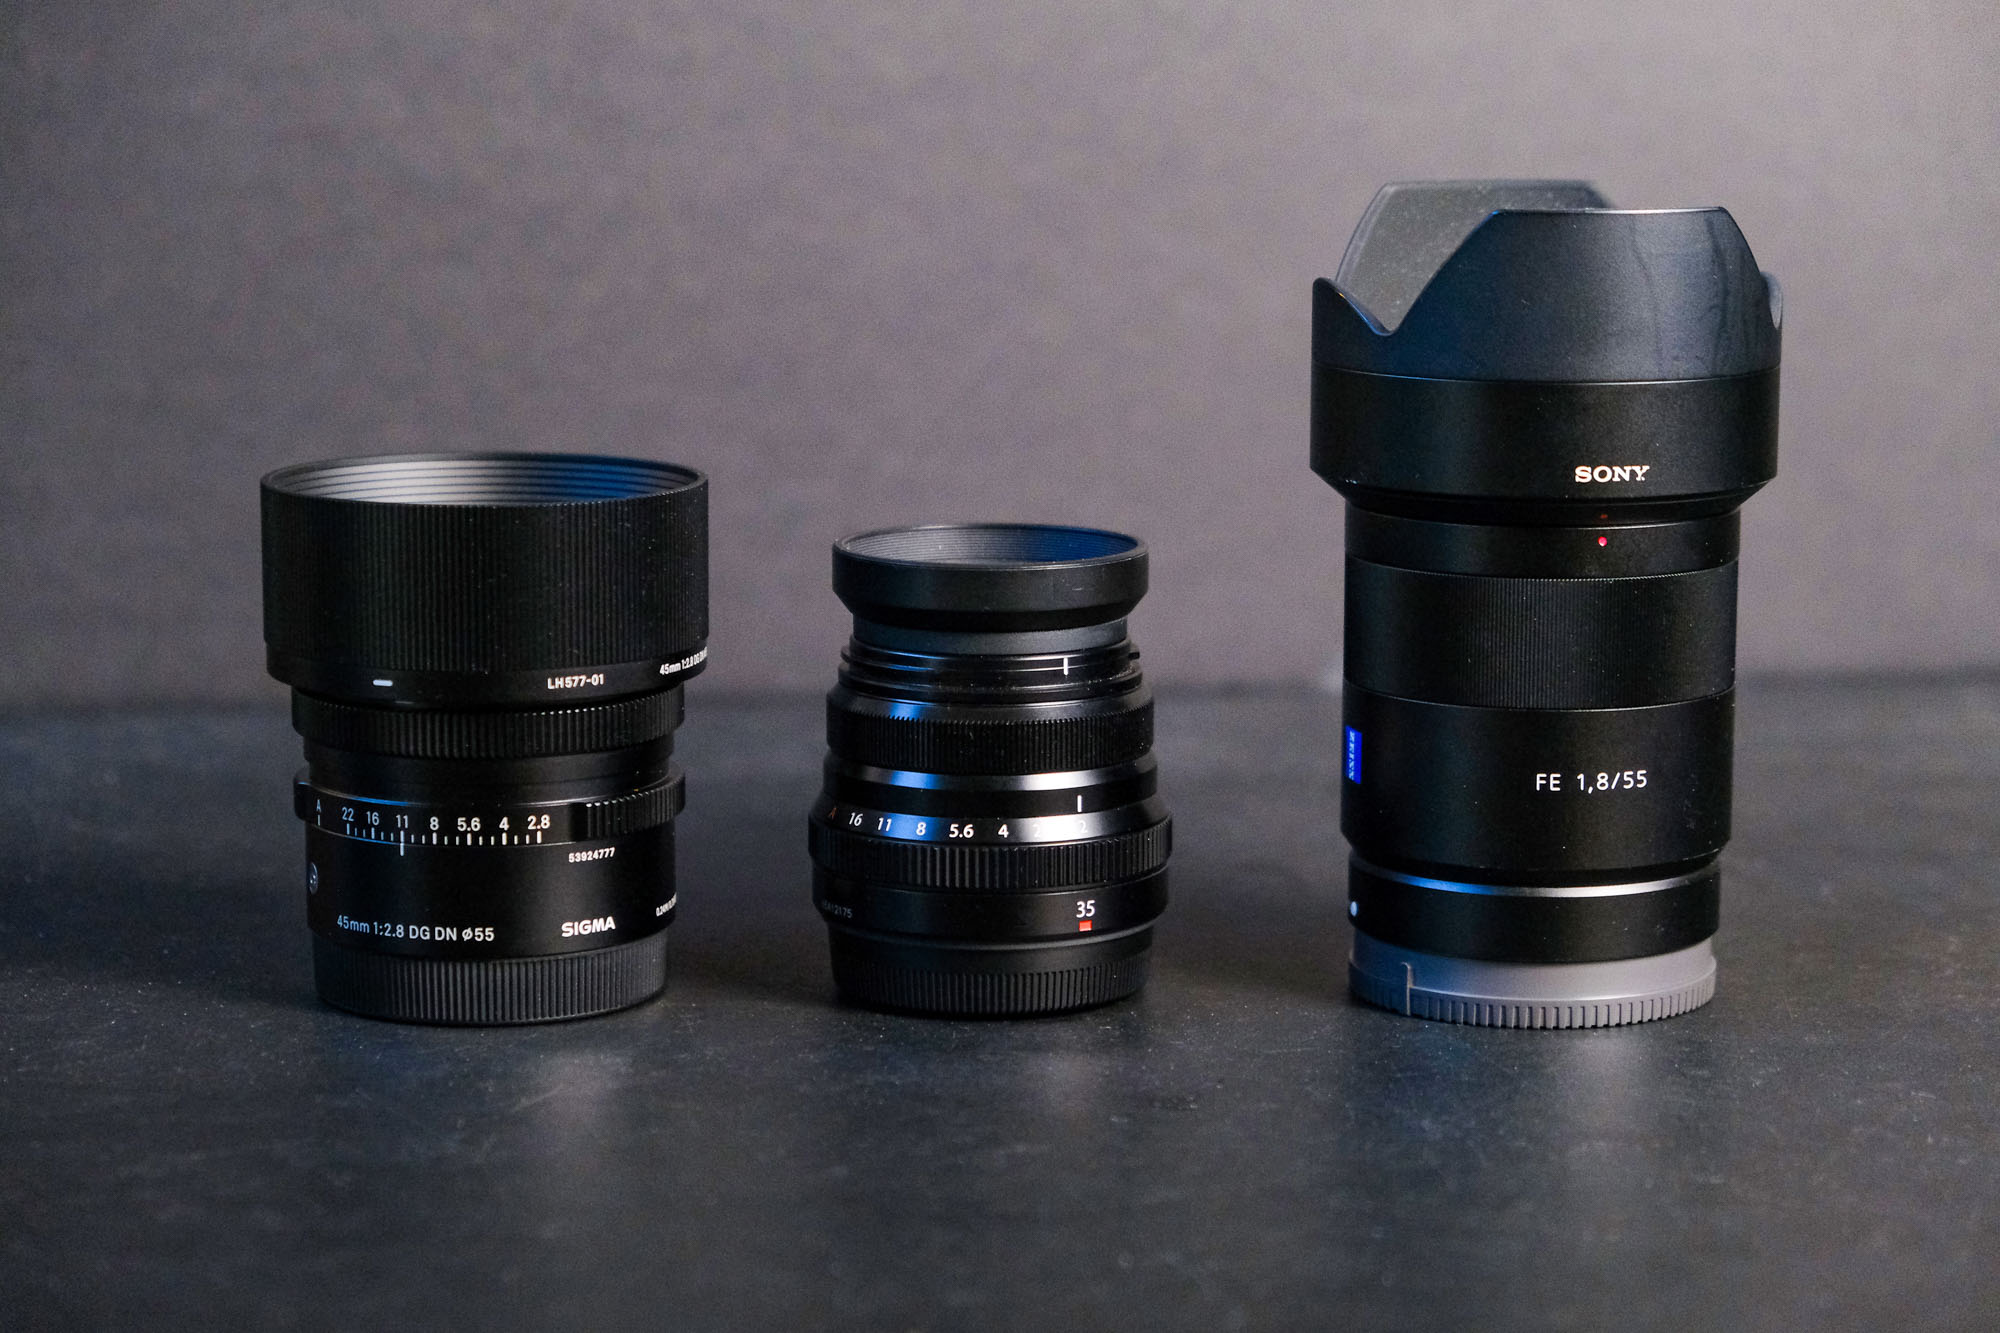 Sigma 45mm f/2.8 Lens for Sony E Mount